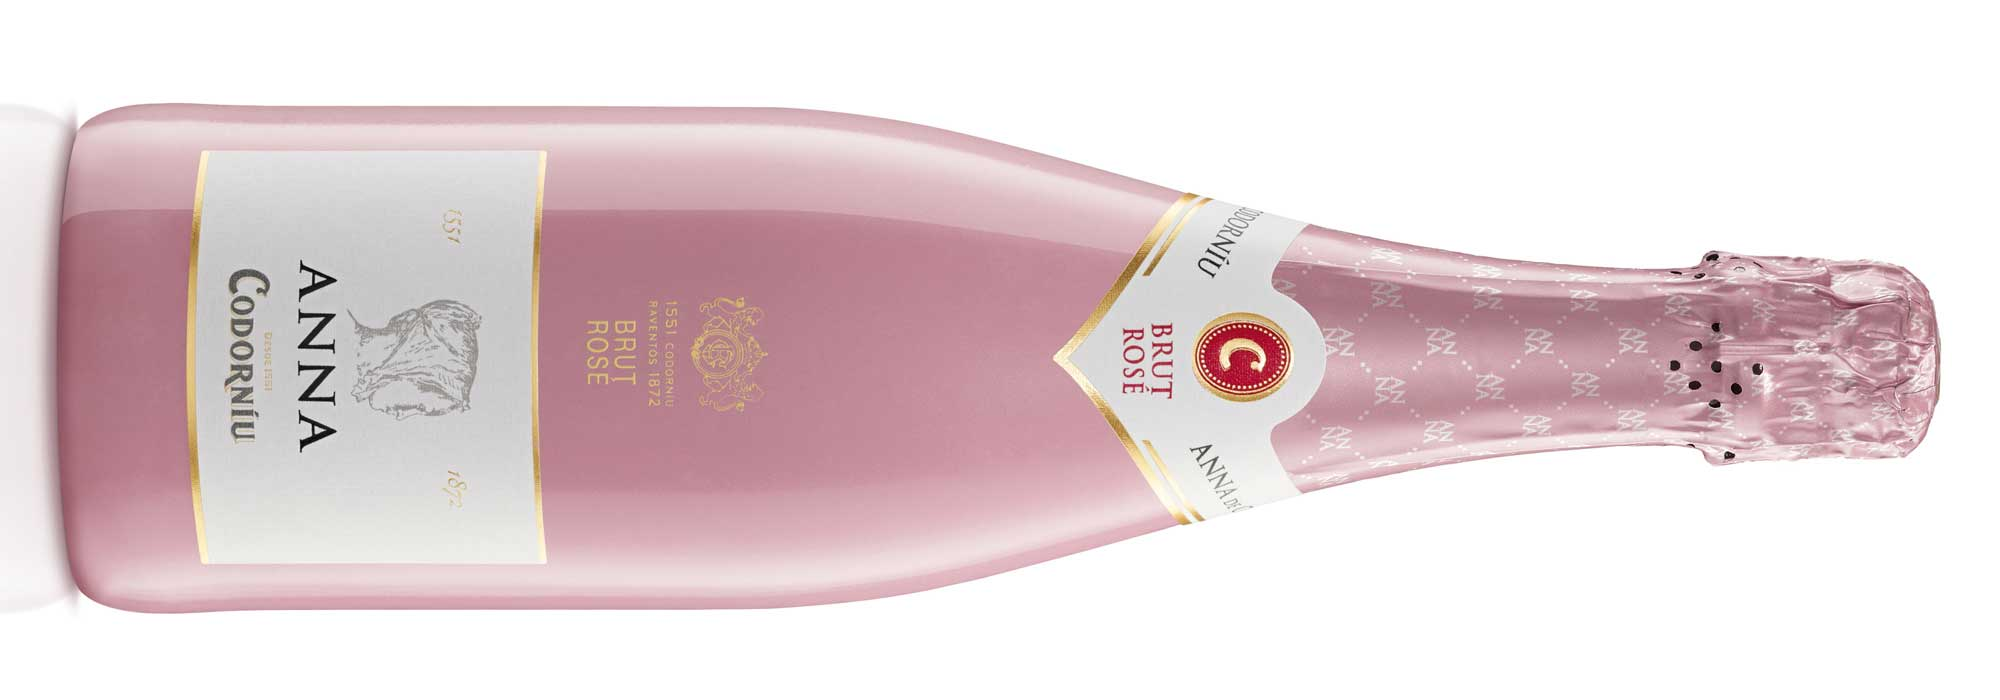 Codorniu Rose | CLUB DEL CAVA